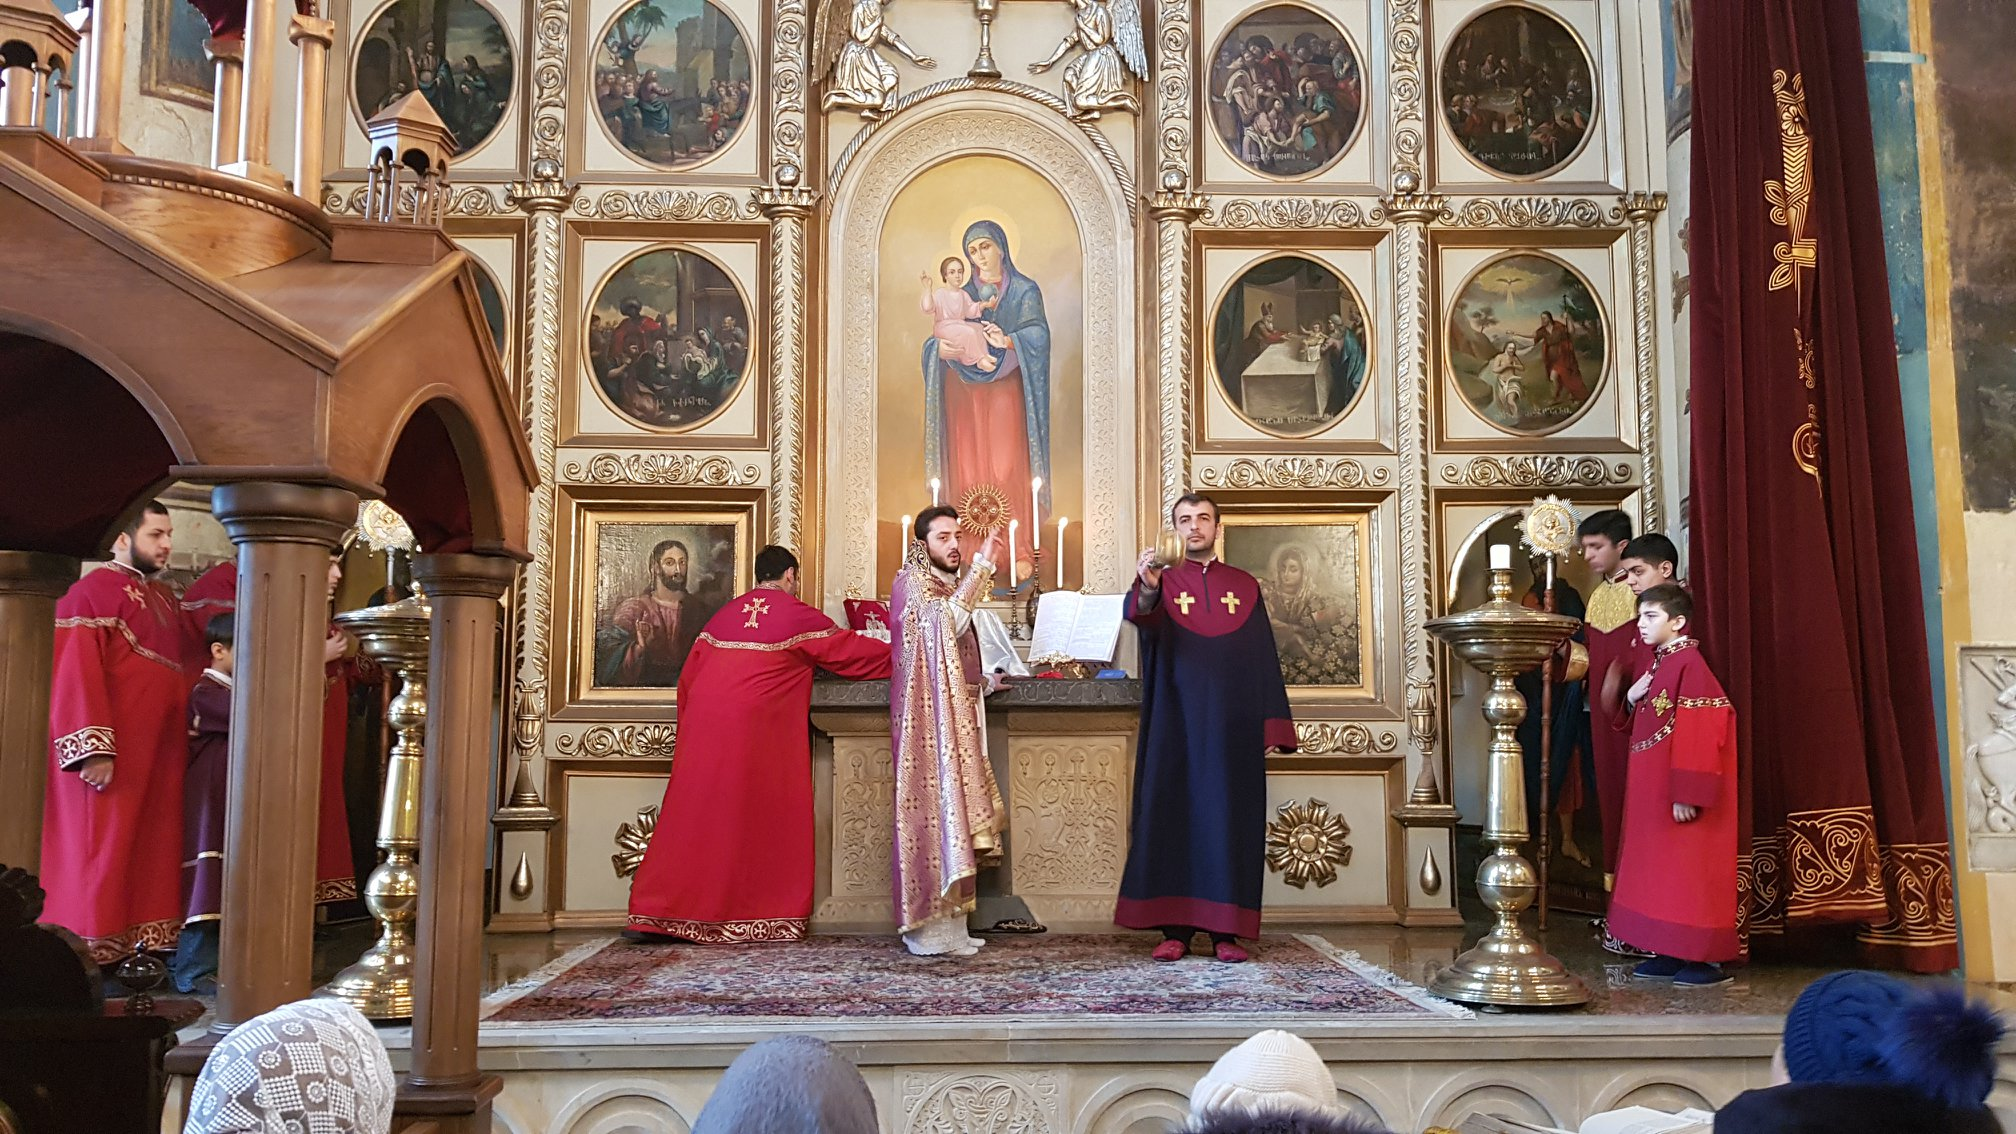 Feast of St. Sarkis was celebrated with Divine Liturgies